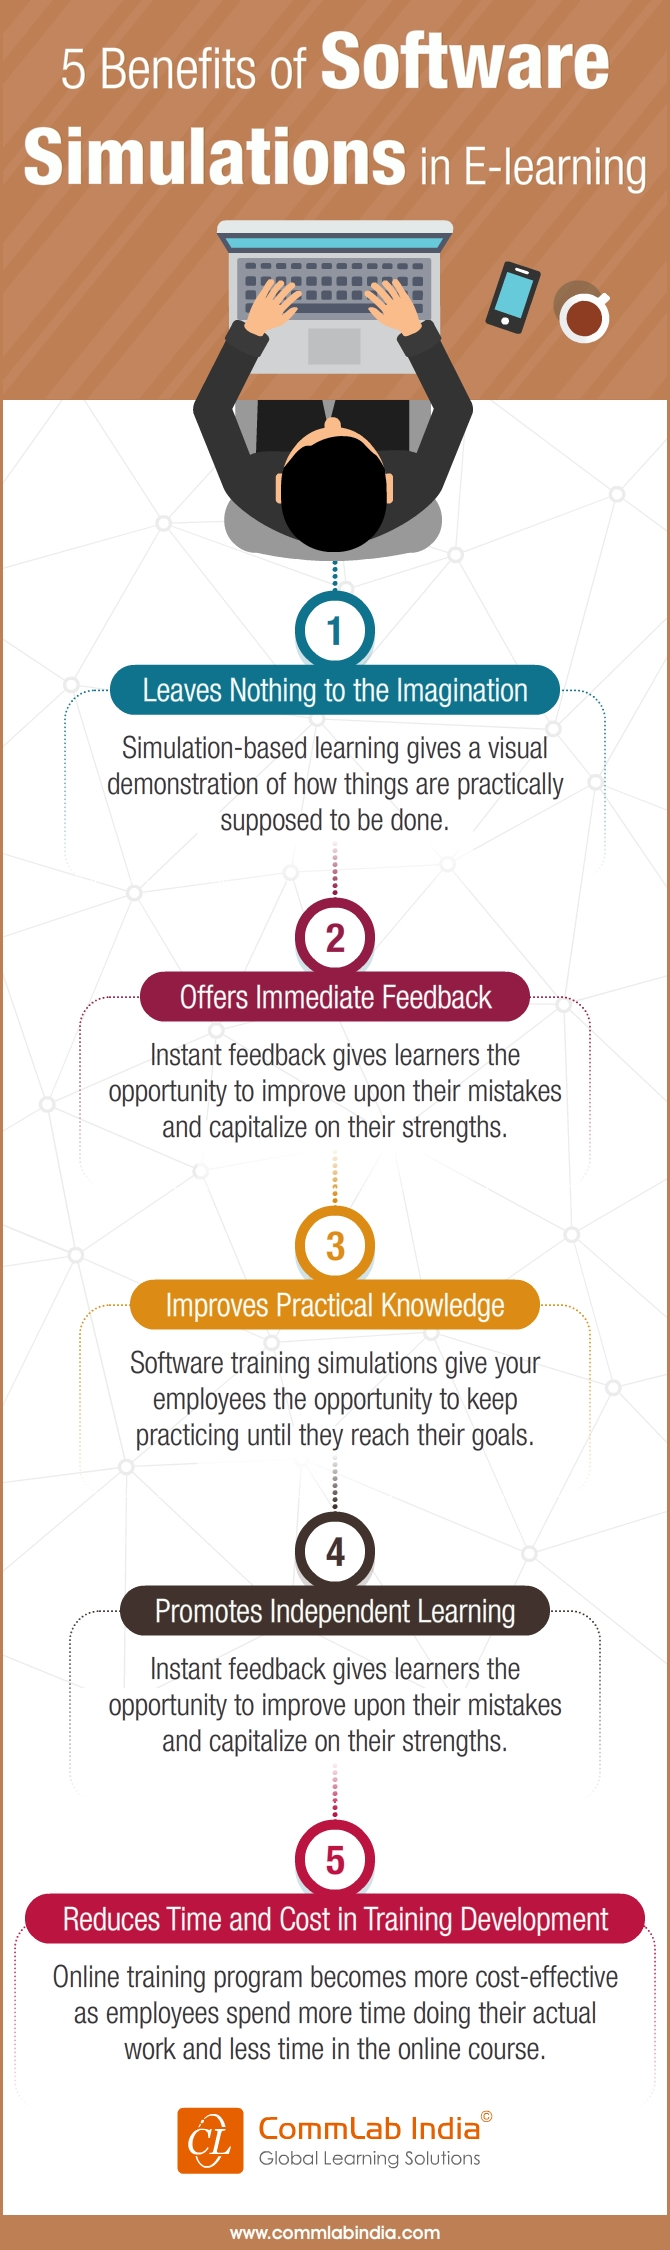 5 Benefits of Software Simulations in E-learning [Infographic]